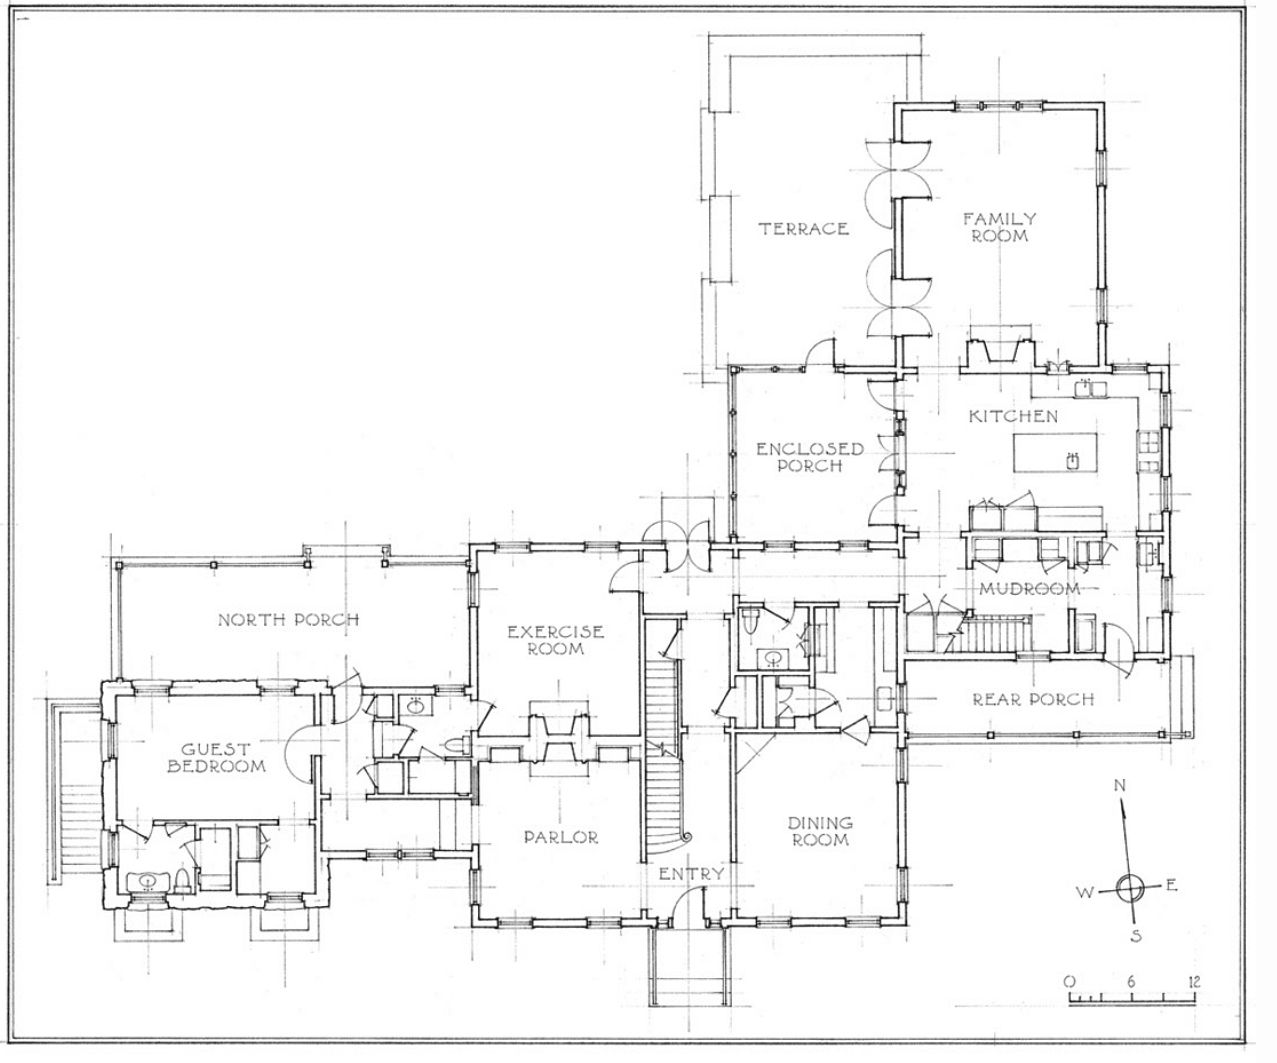 Pin On Sketches Plans